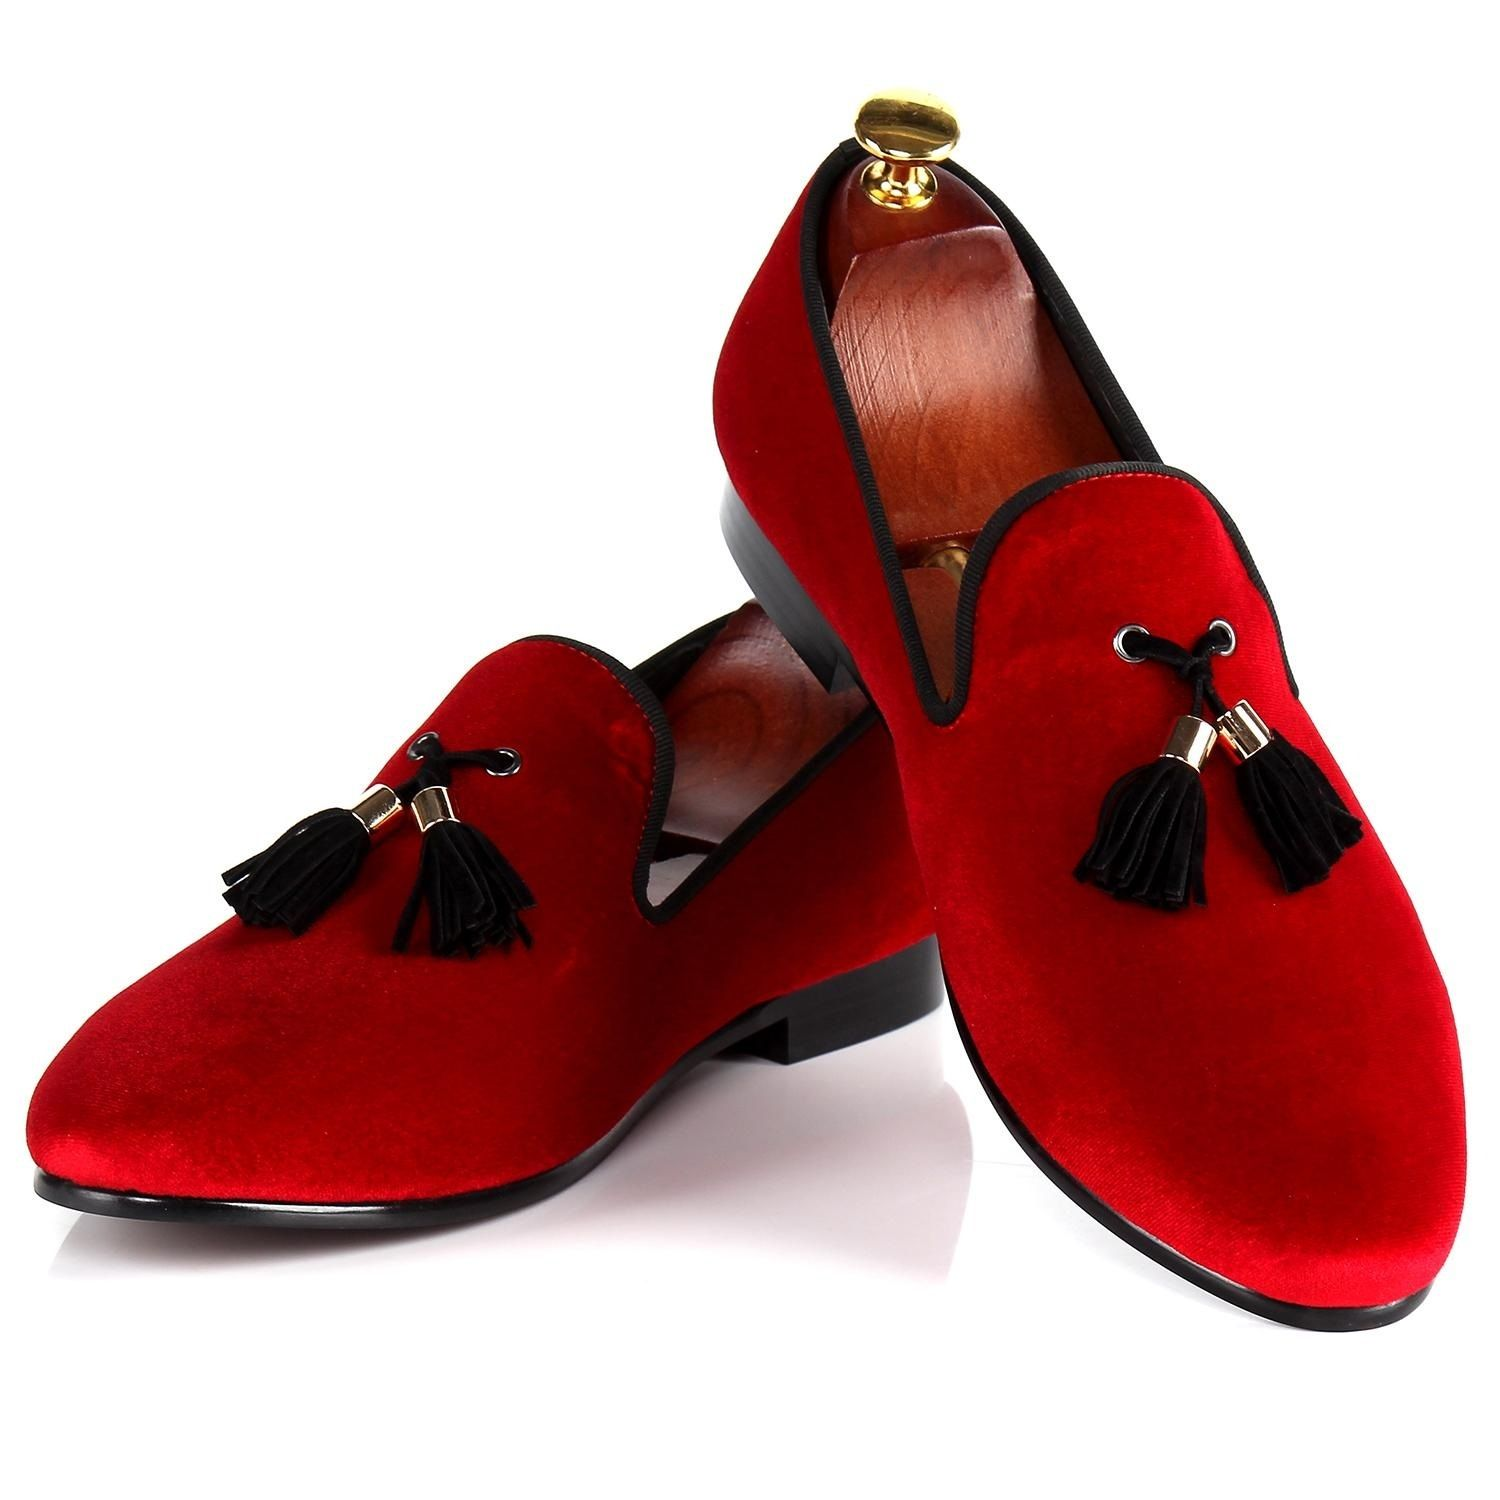 Harpelunde Italian Men Dress Shoes Buckle Strap Wedding Shoes Red Velvet Loafers  Size 7-14  ee5a5027ba17